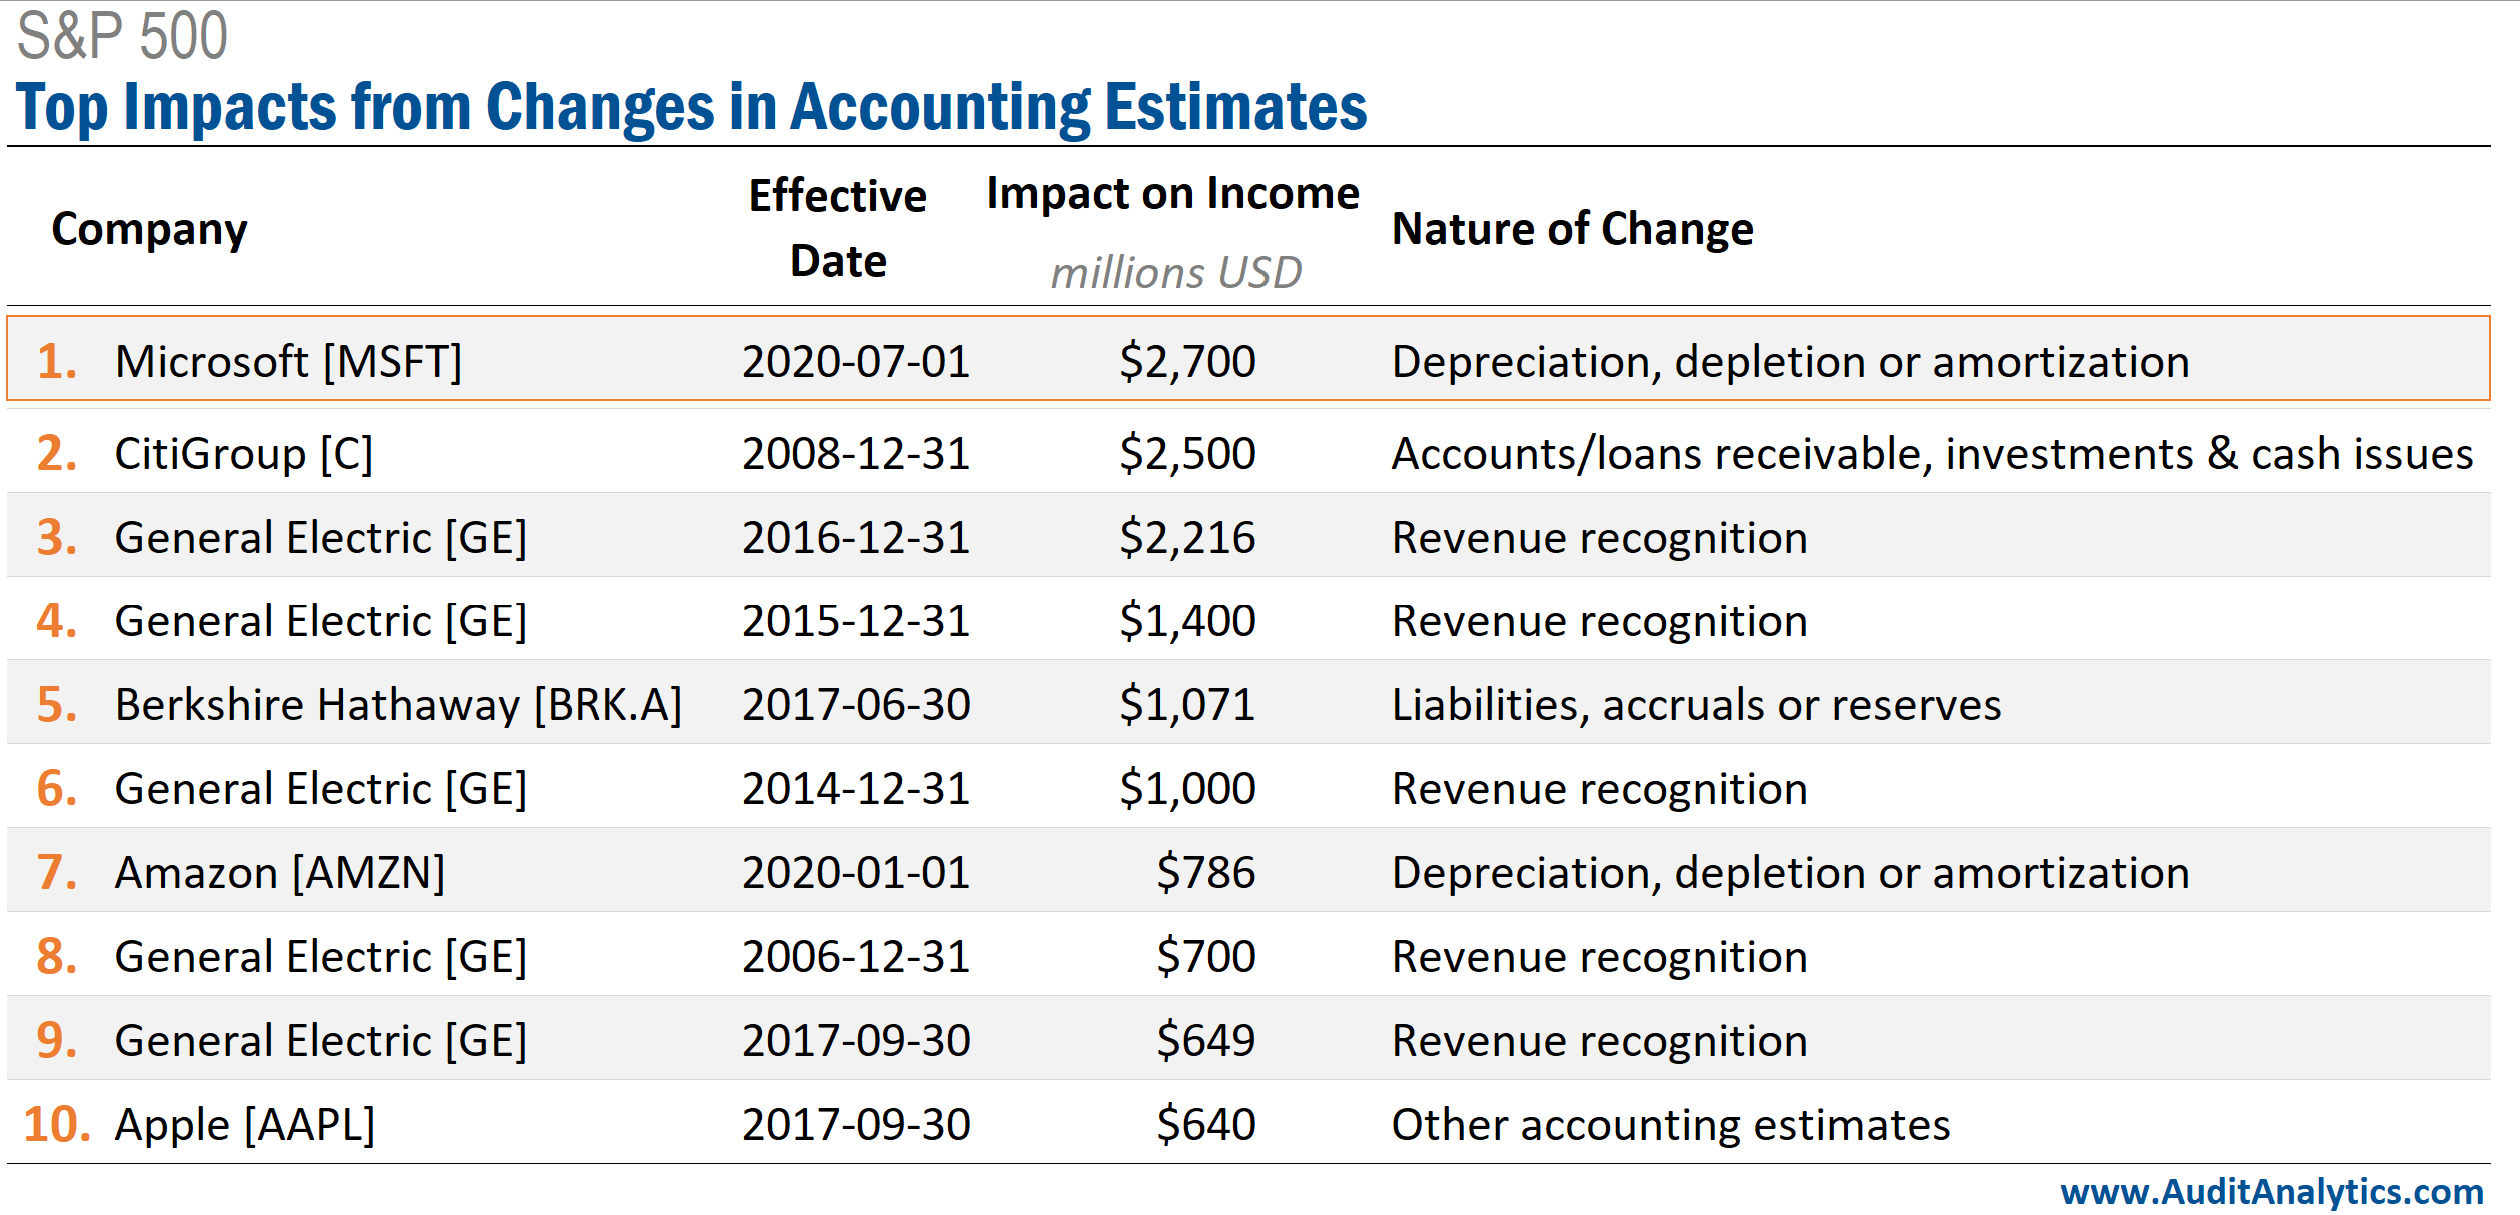 Microsoft's change in accounting estimate related to S&P 500